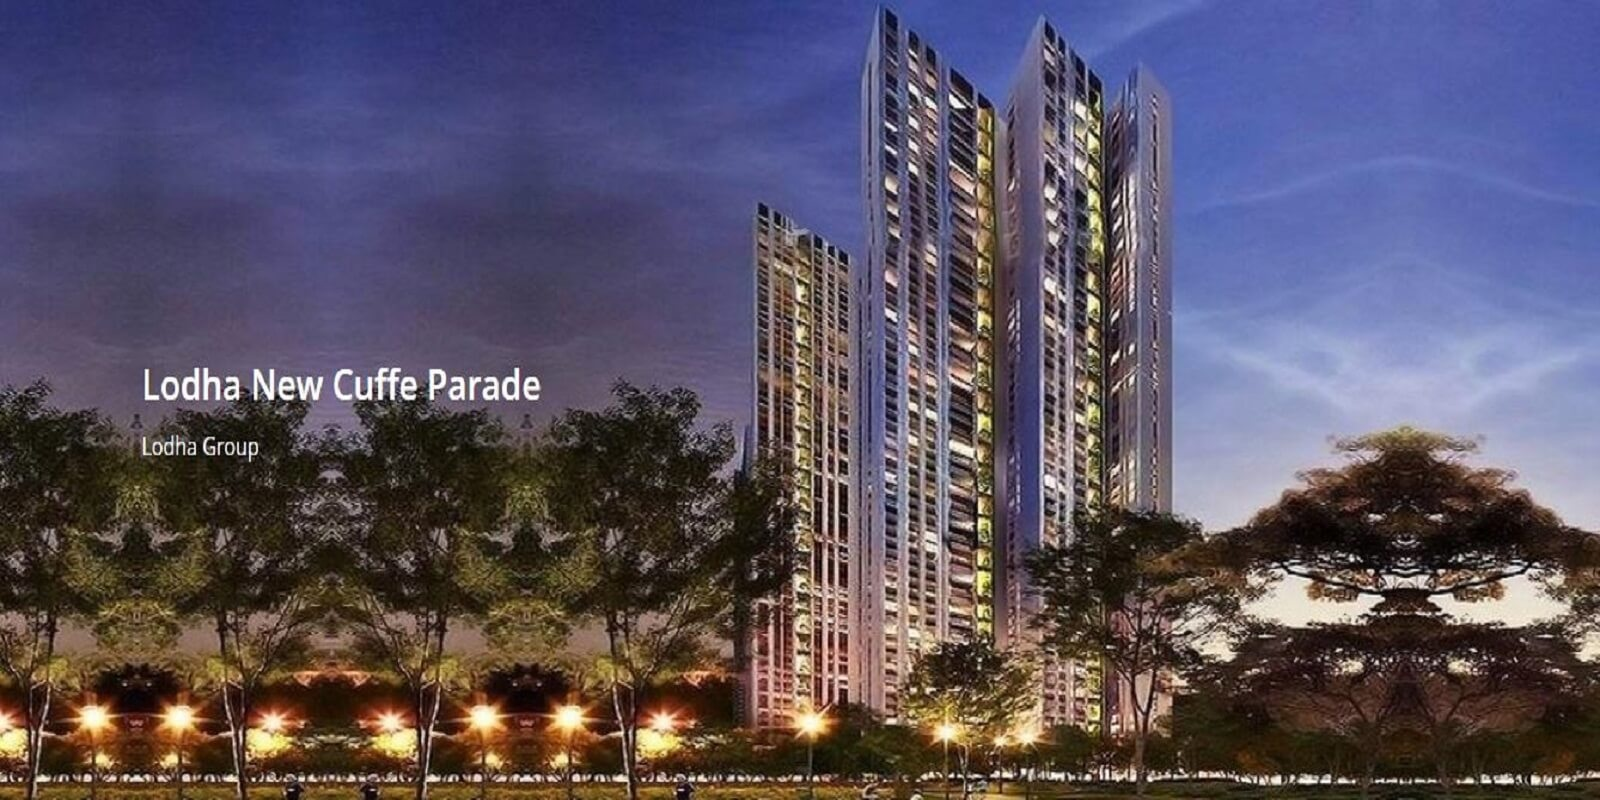 lodha new cuffe parade tower 11 project large image2